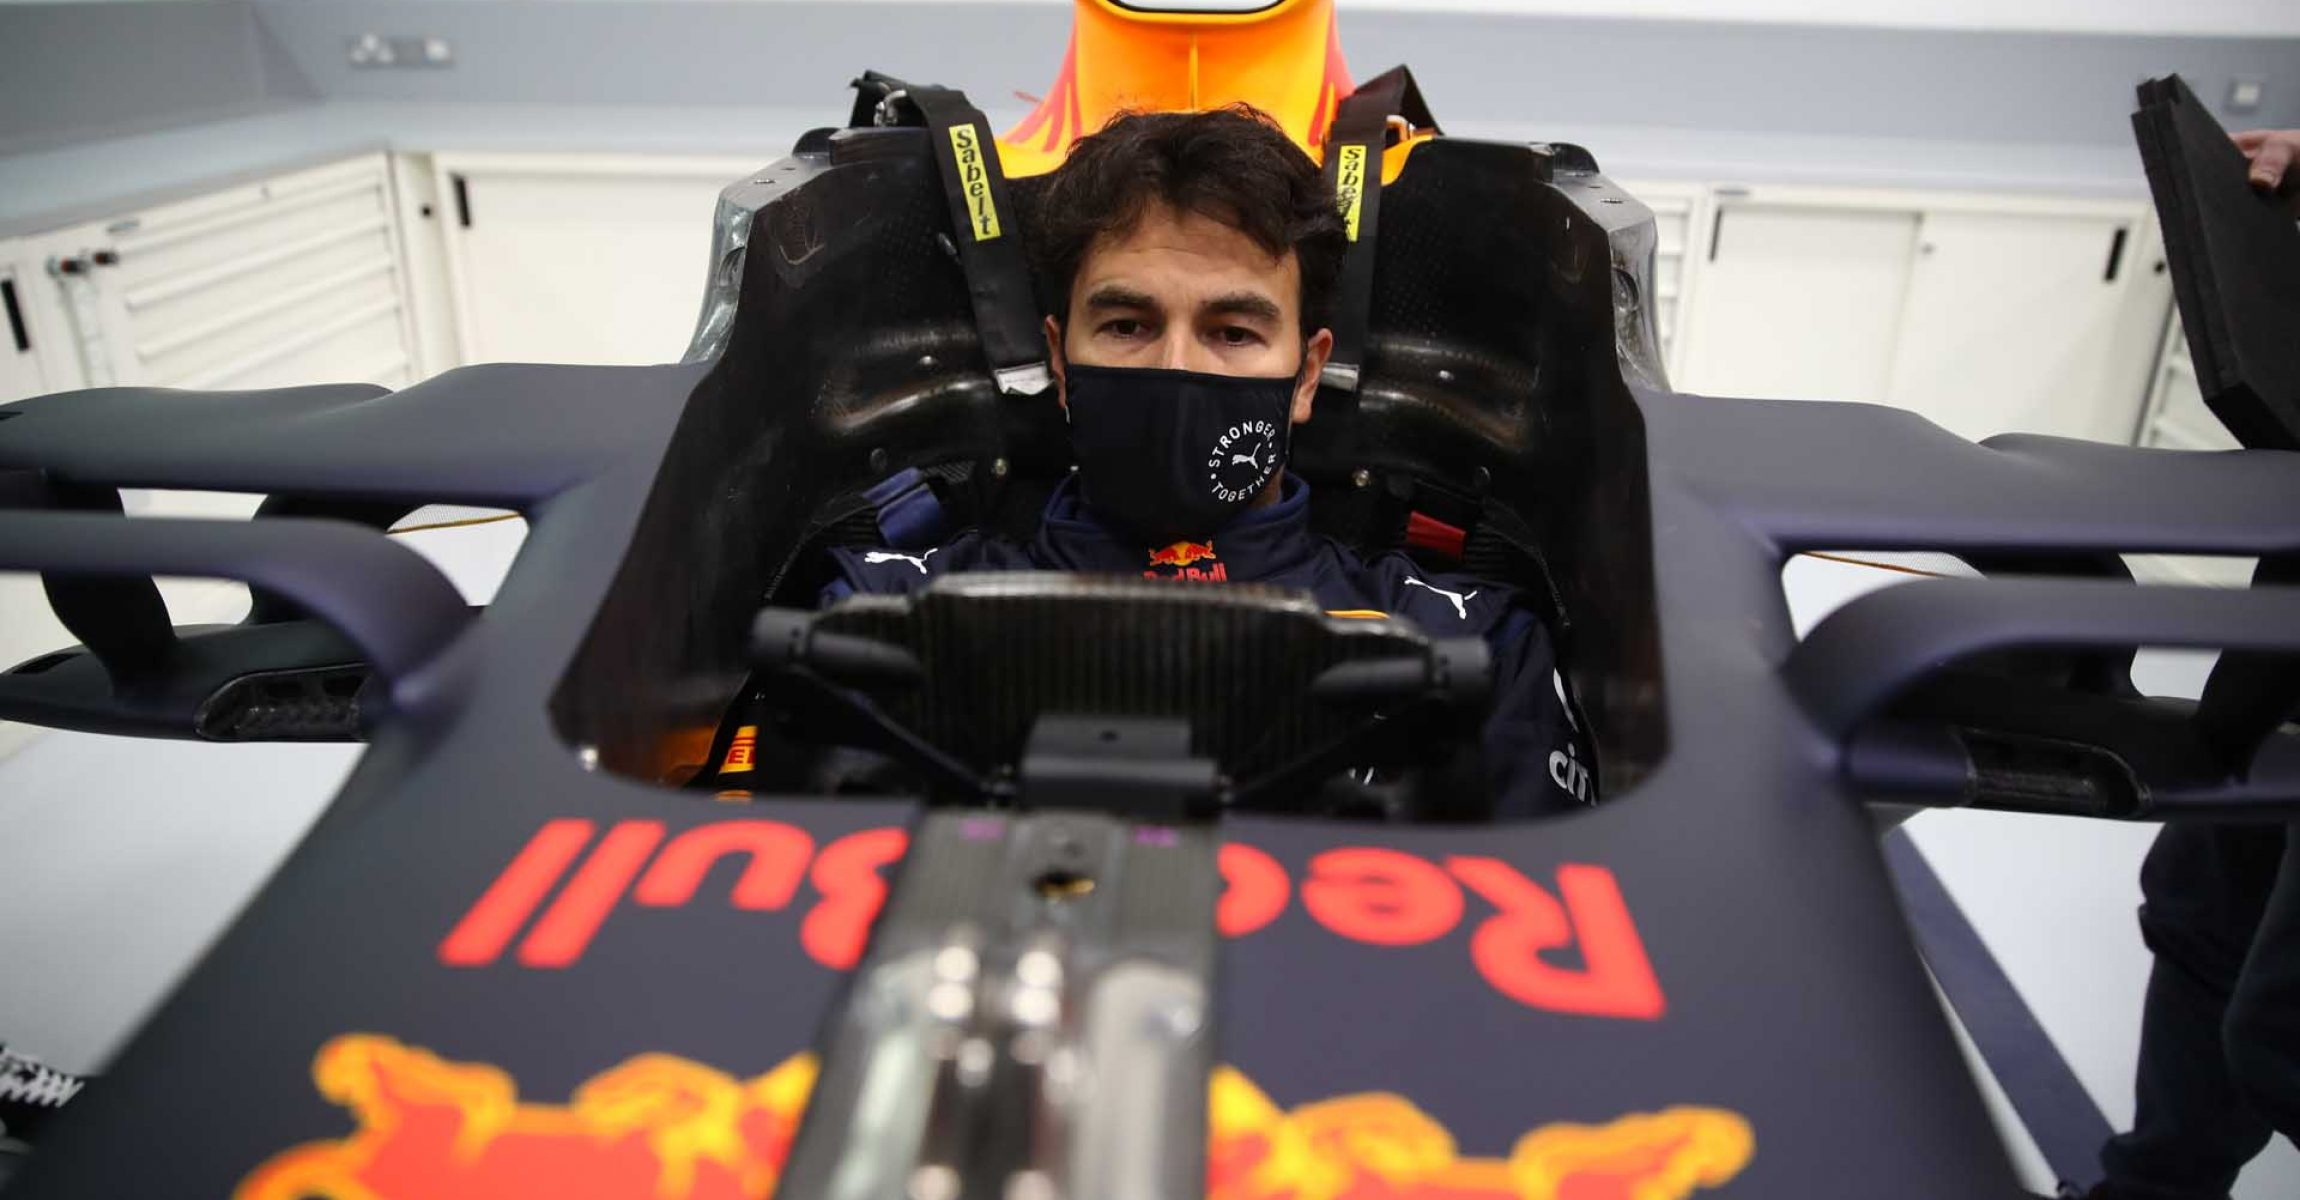 MILTON KEYNES, ENGLAND - JANUARY 12: Sergio Perez of Mexico and Red Bull Racing has a seat fitting at Red Bull Racing Factory on January 12, 2021 in Milton Keynes, England. (Photo by Mark Thompson/Getty Images)